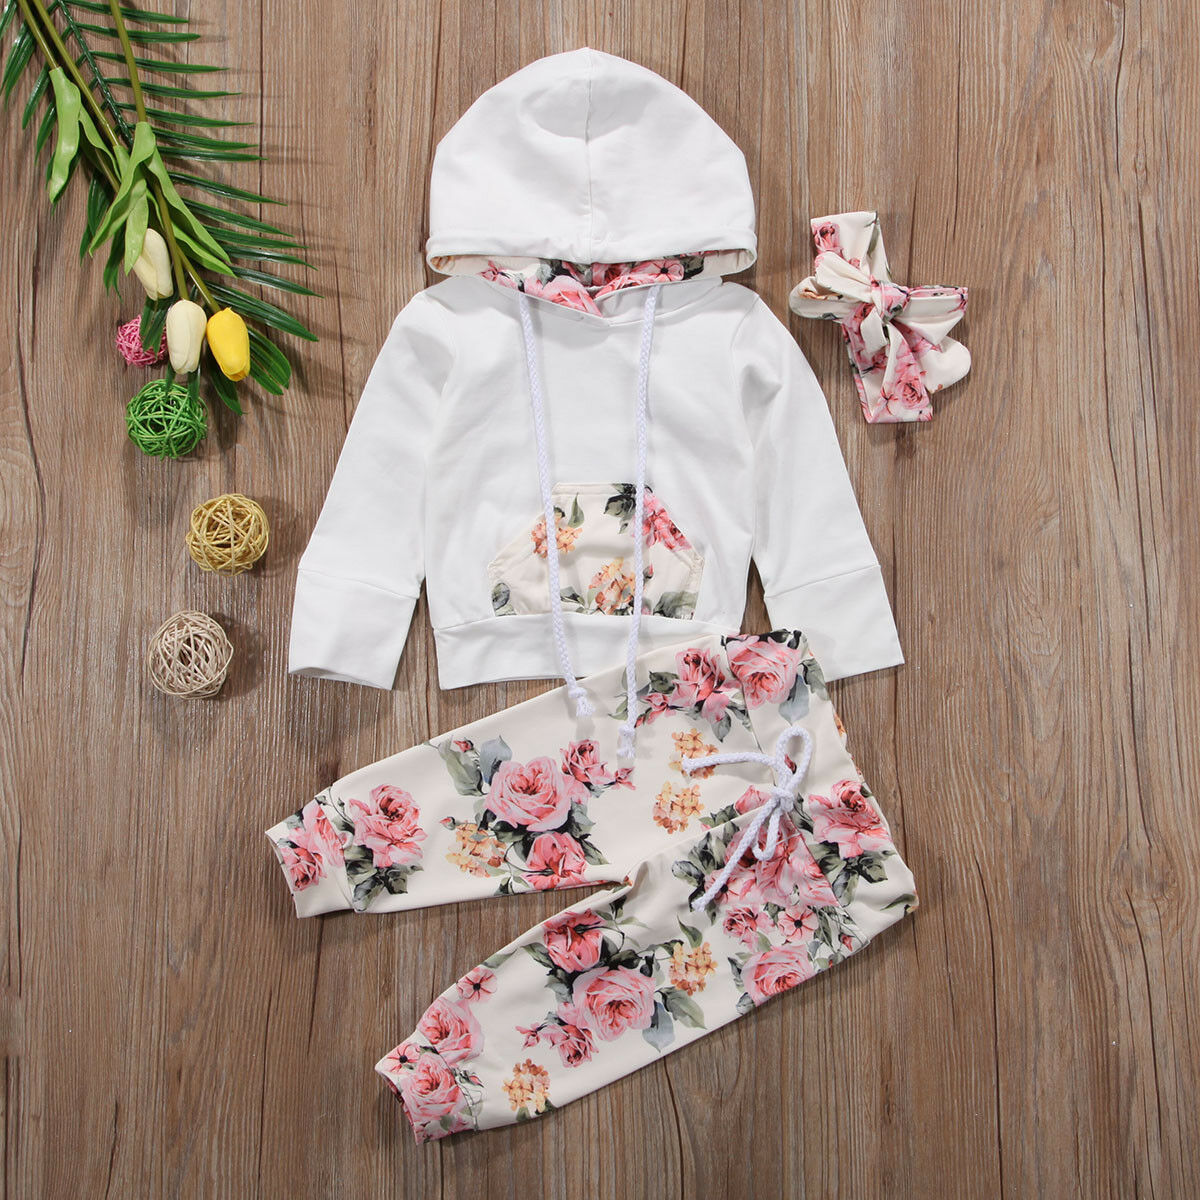 Pudcoco Autumn Newborn Baby Girl Clothes Flower Print Long Sleeve Hooded Tops Long Pants Headband 3Pcs Outfits Sweatshirt Set